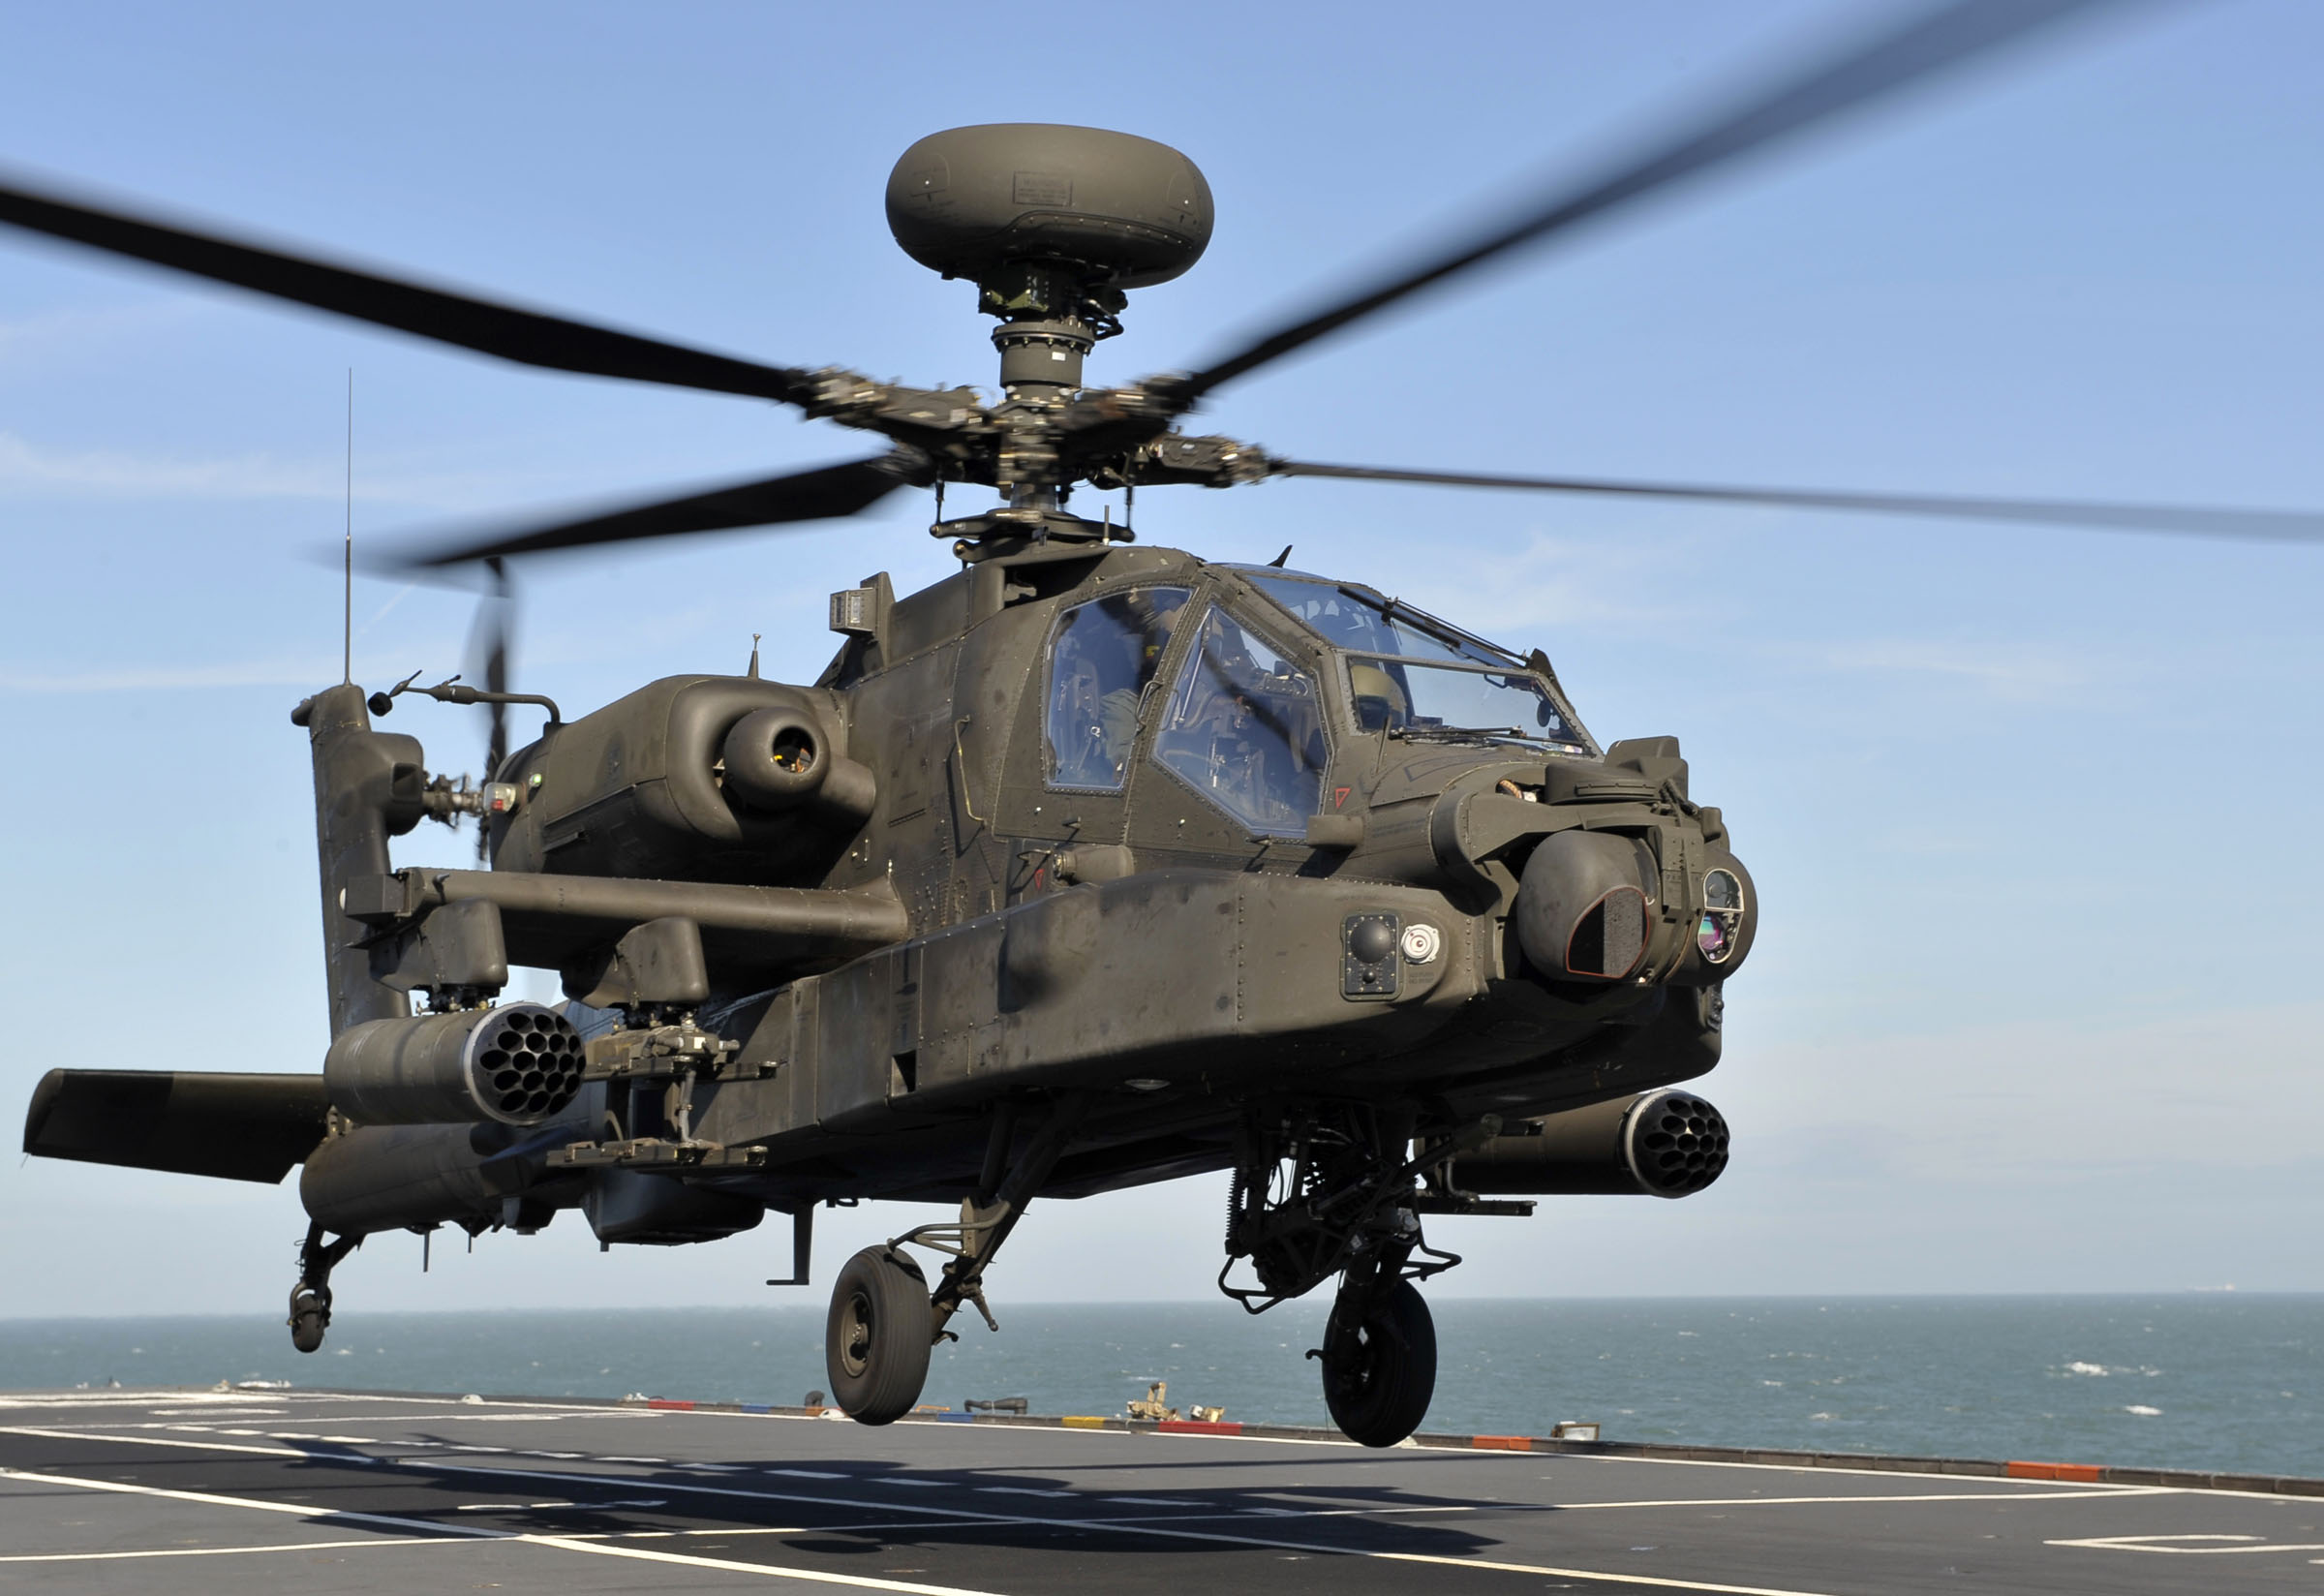 helecopter rc with Military Attack Helicopters on Showthread in addition View article moreover Starkid RC Toy Helicopter With Remote Control RtF 68065 as well GYROSparrowHeliReplacementRCHelicopterPartsSet also The Largest Helicopter Ever Made Mil V.